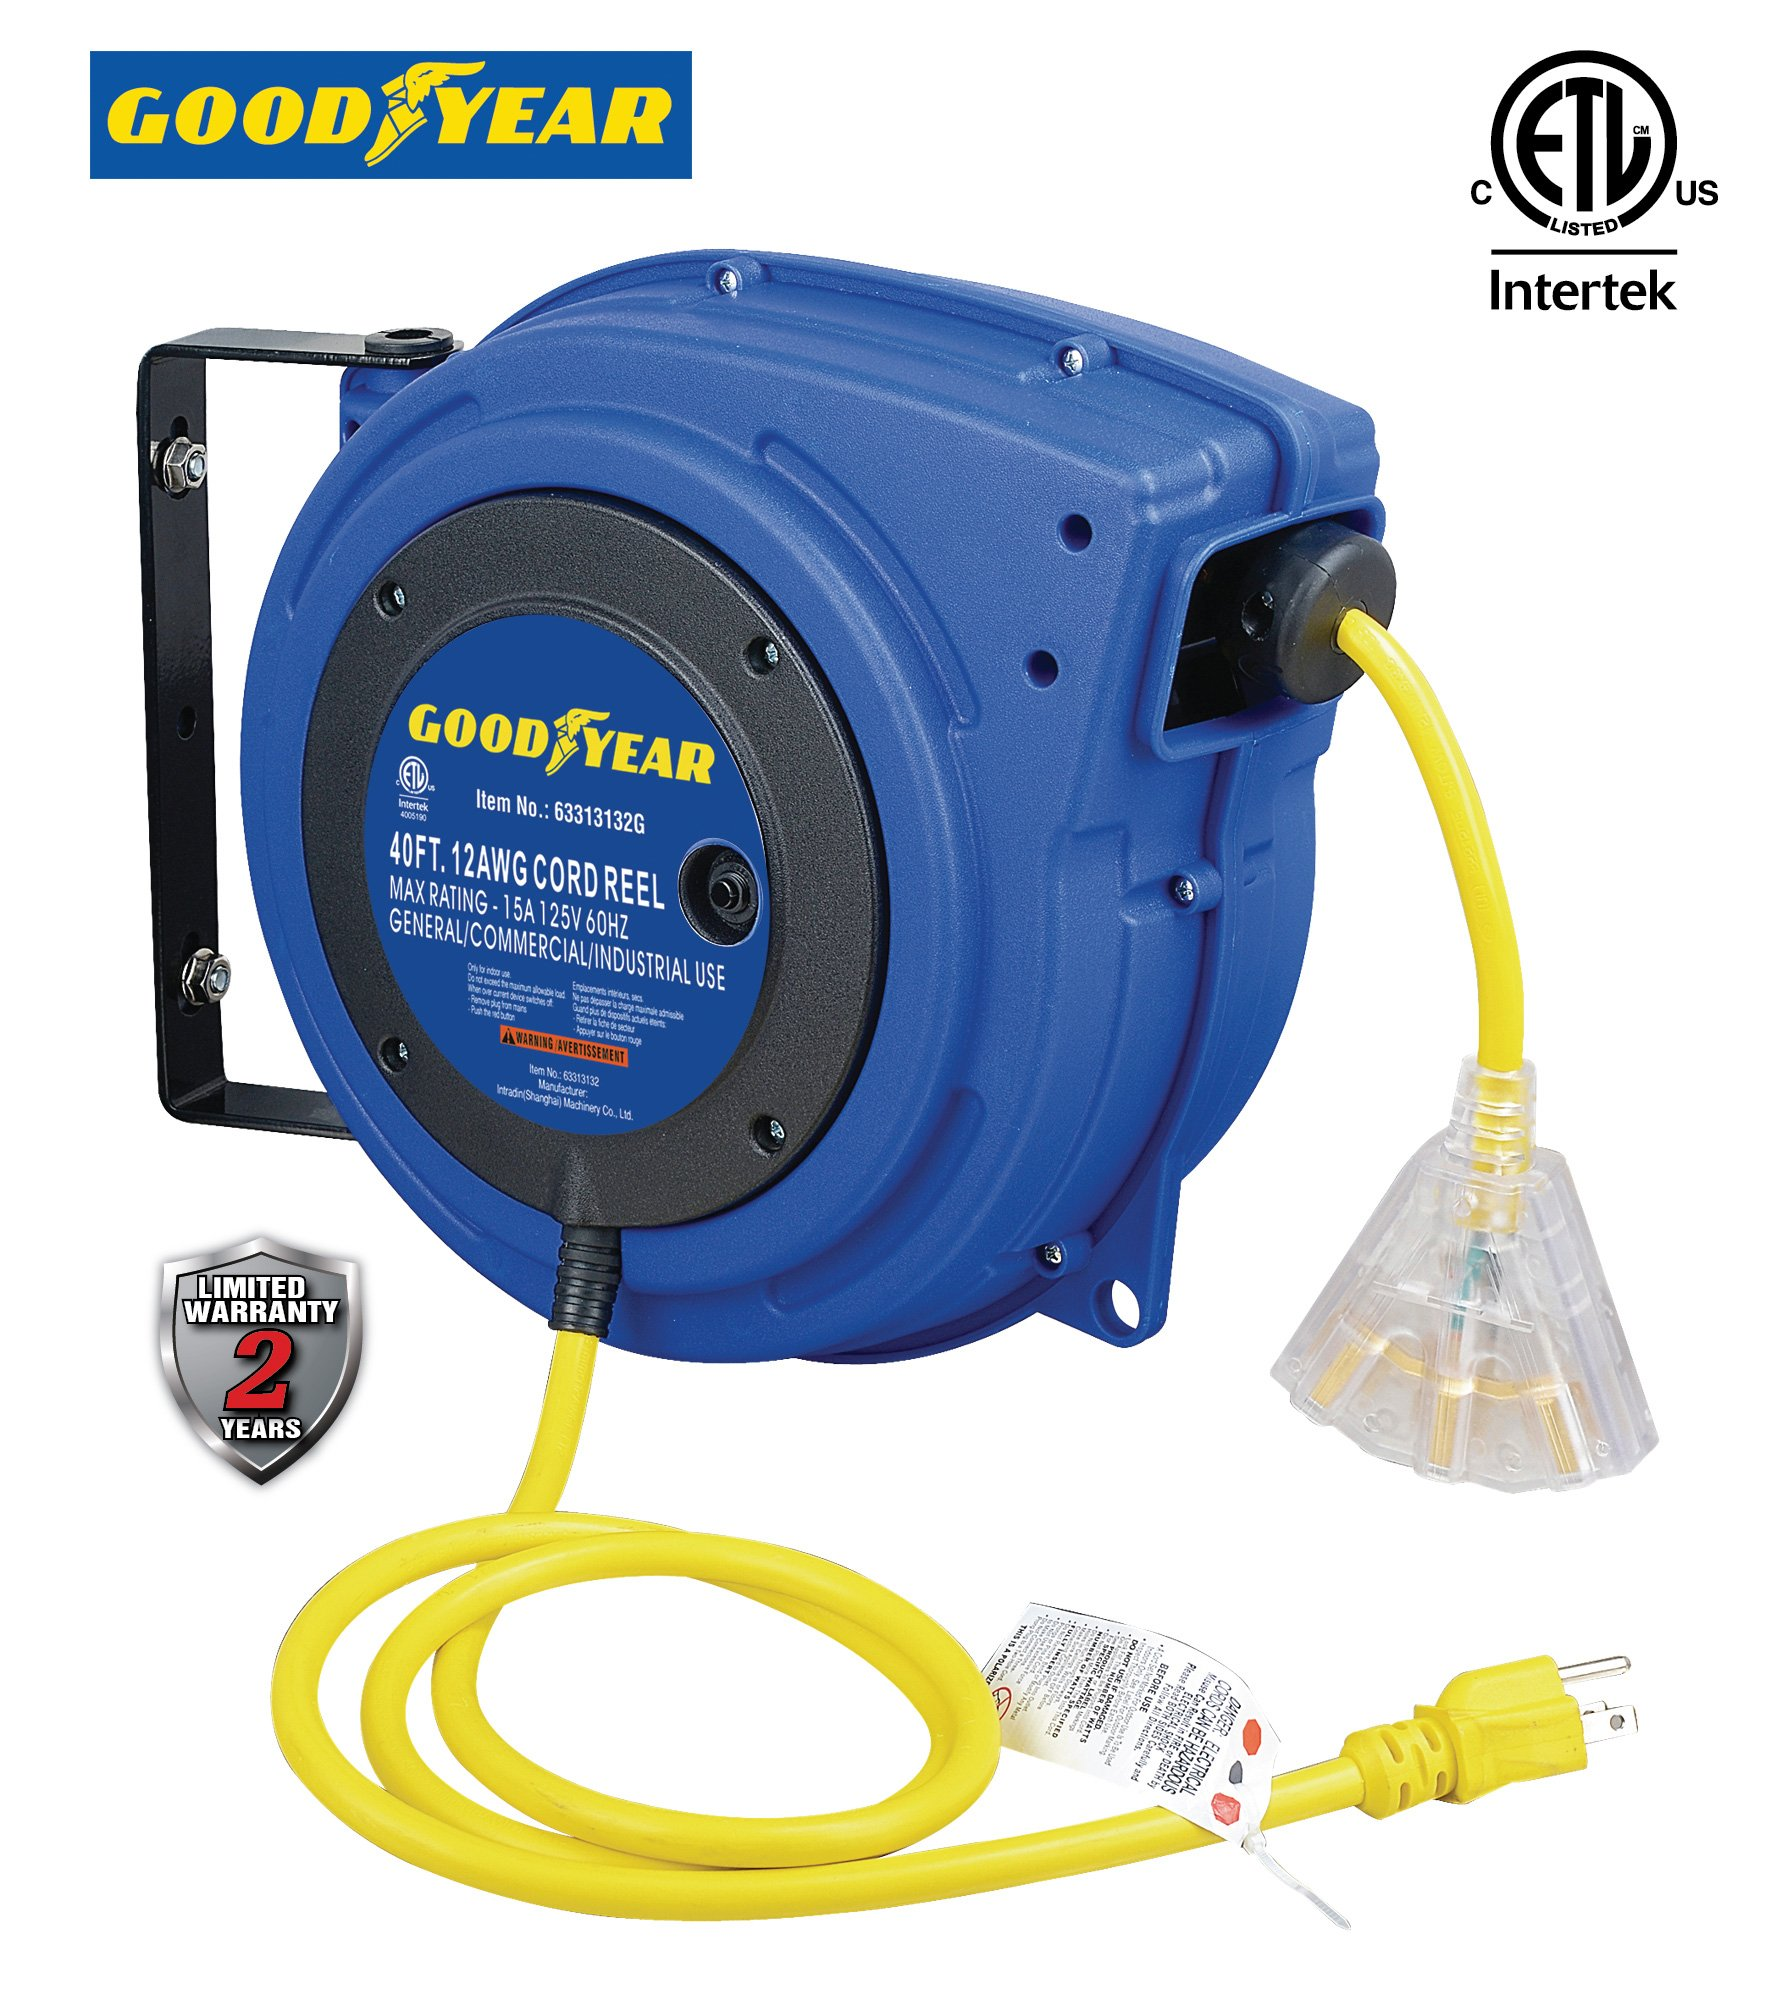 Goodyear Extension Cord Reel Heavy Duty, 40 ft., 12AWG/3C SJTOW, Triple Tap with LED Lighted Connector by Goodyear